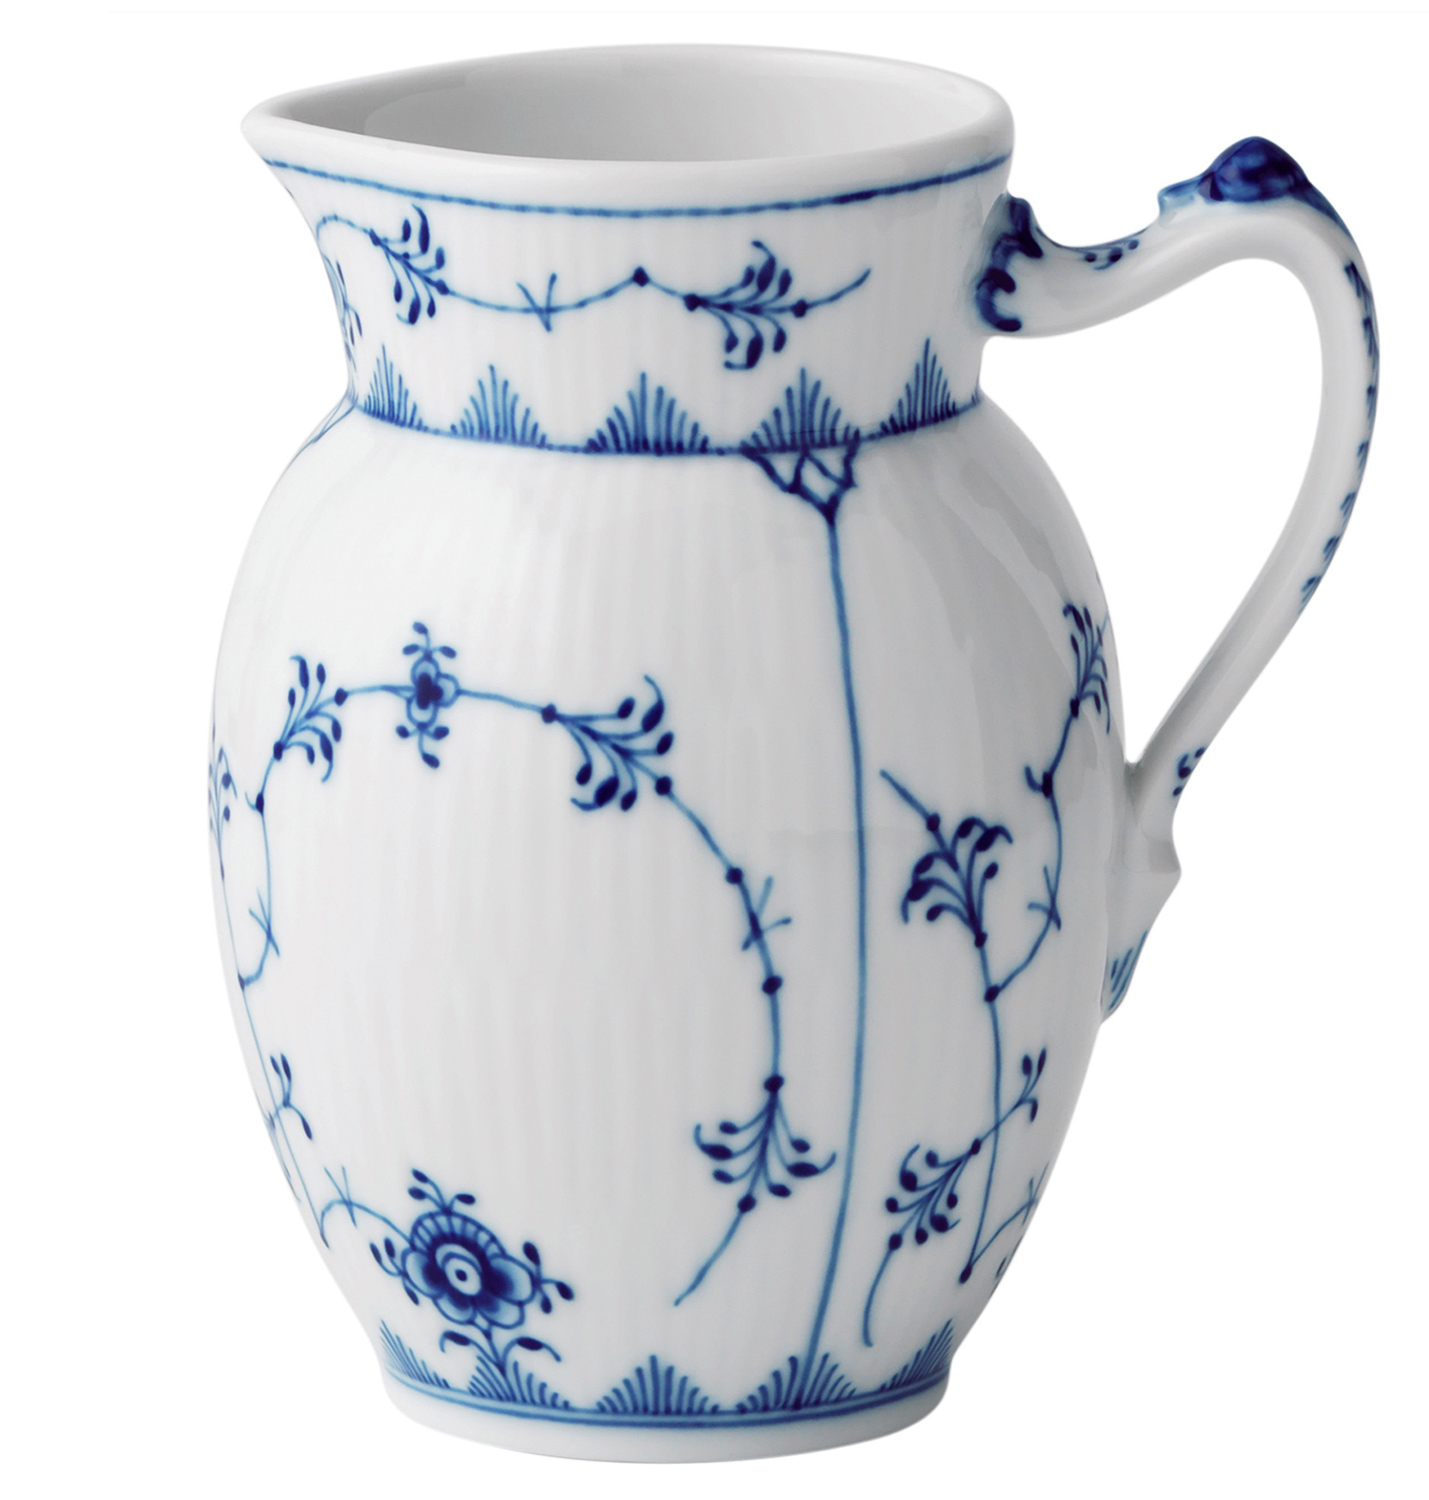 Royal Copenhagen Geschirr Royal Copenhagen Blue Fluted Plain Jug 38 L